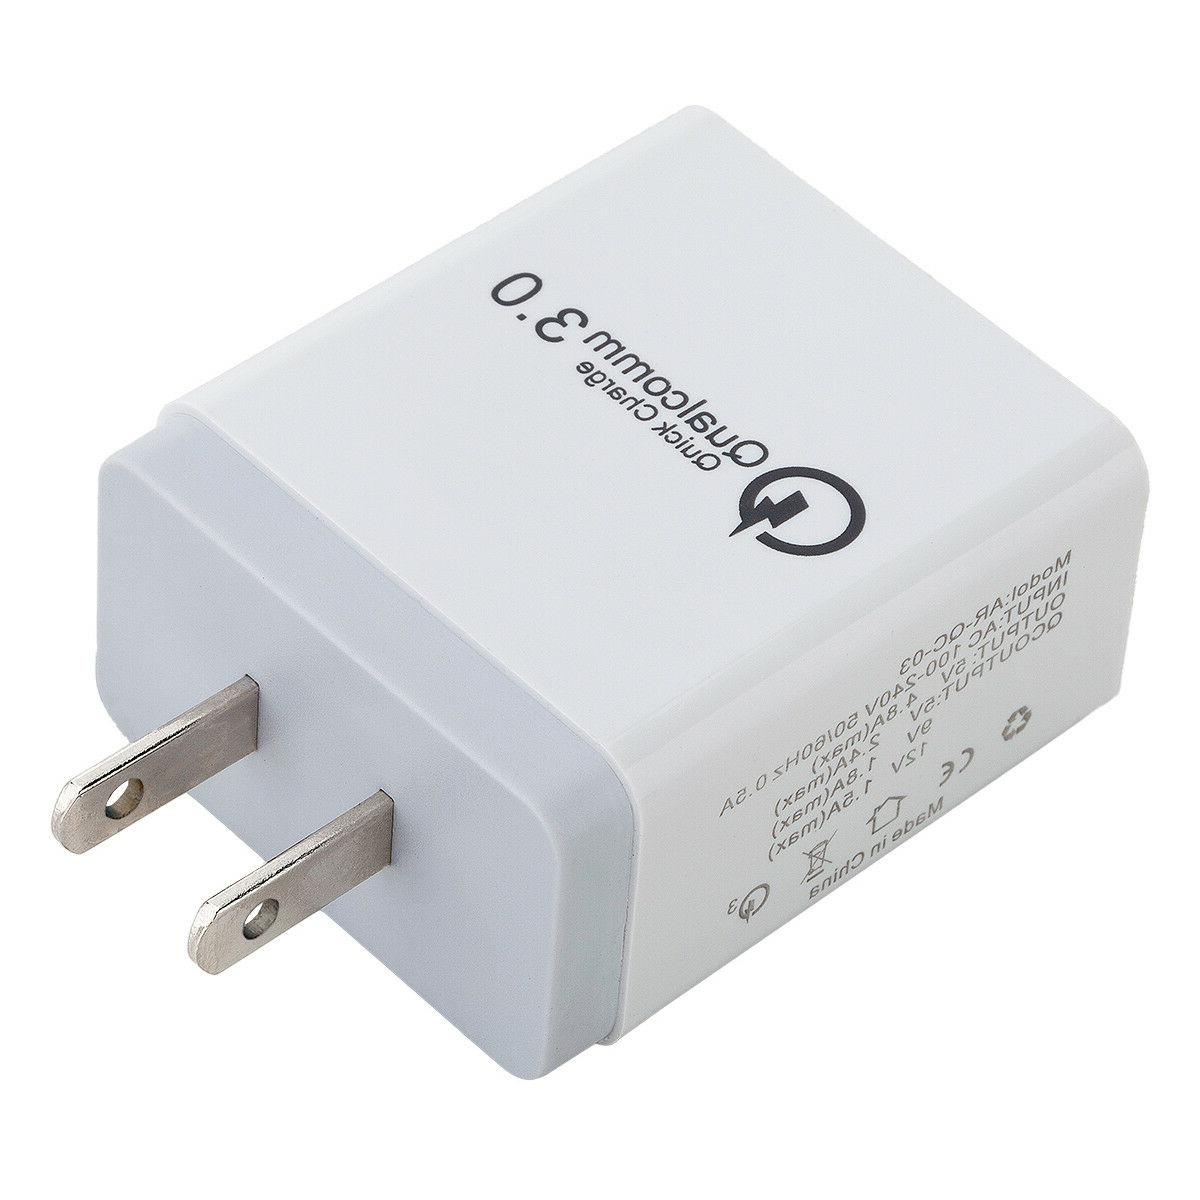 30W 3-Port Wall Charger Charge iPhone Samsung